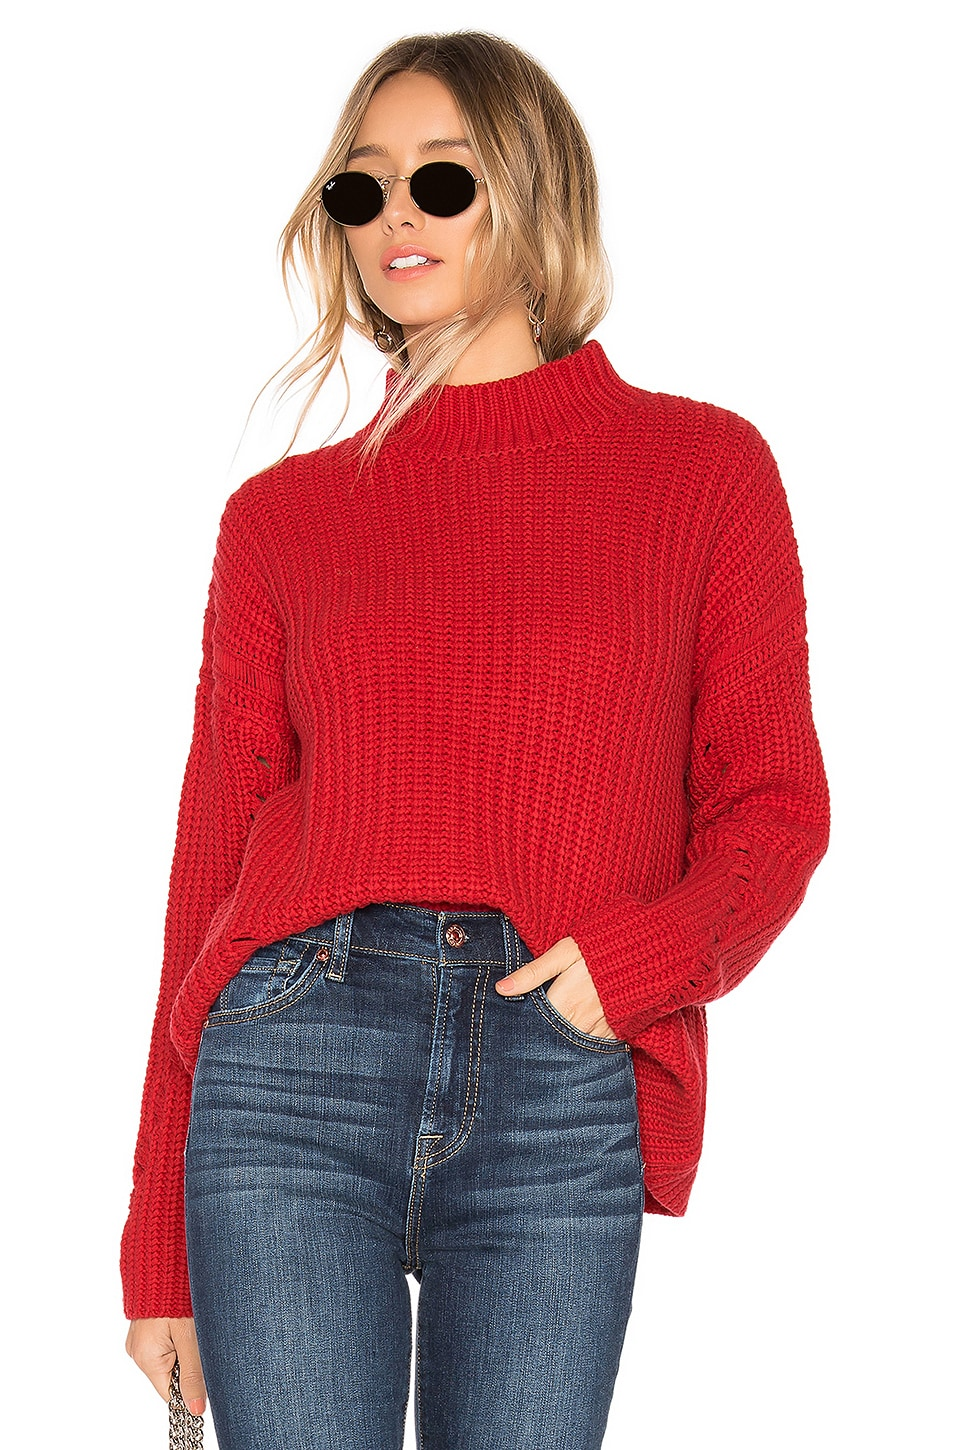 Lovers + Friends Clea Sweater in Bright Red